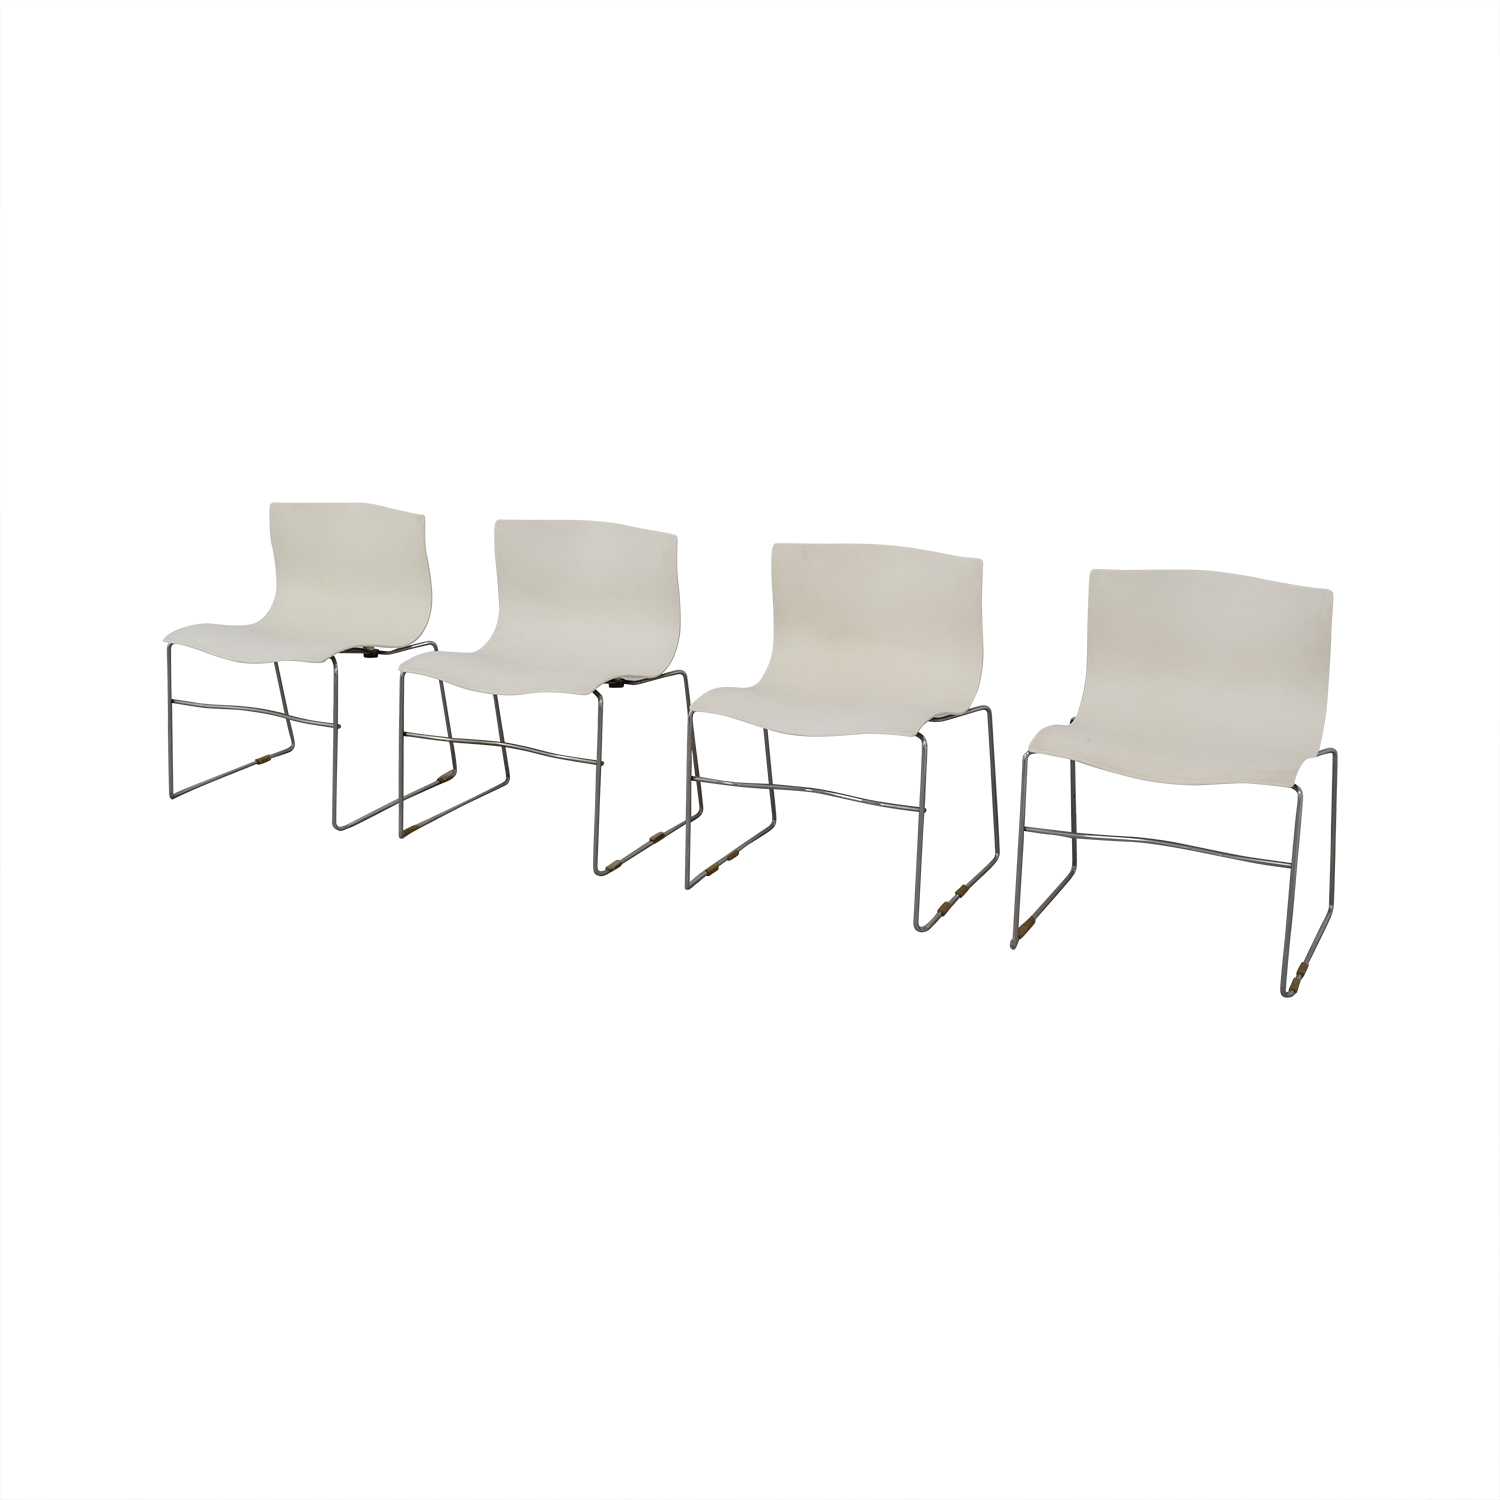 Knoll Knoll Vignelli Designs 1983 White Handkerchief Chairs dimensions